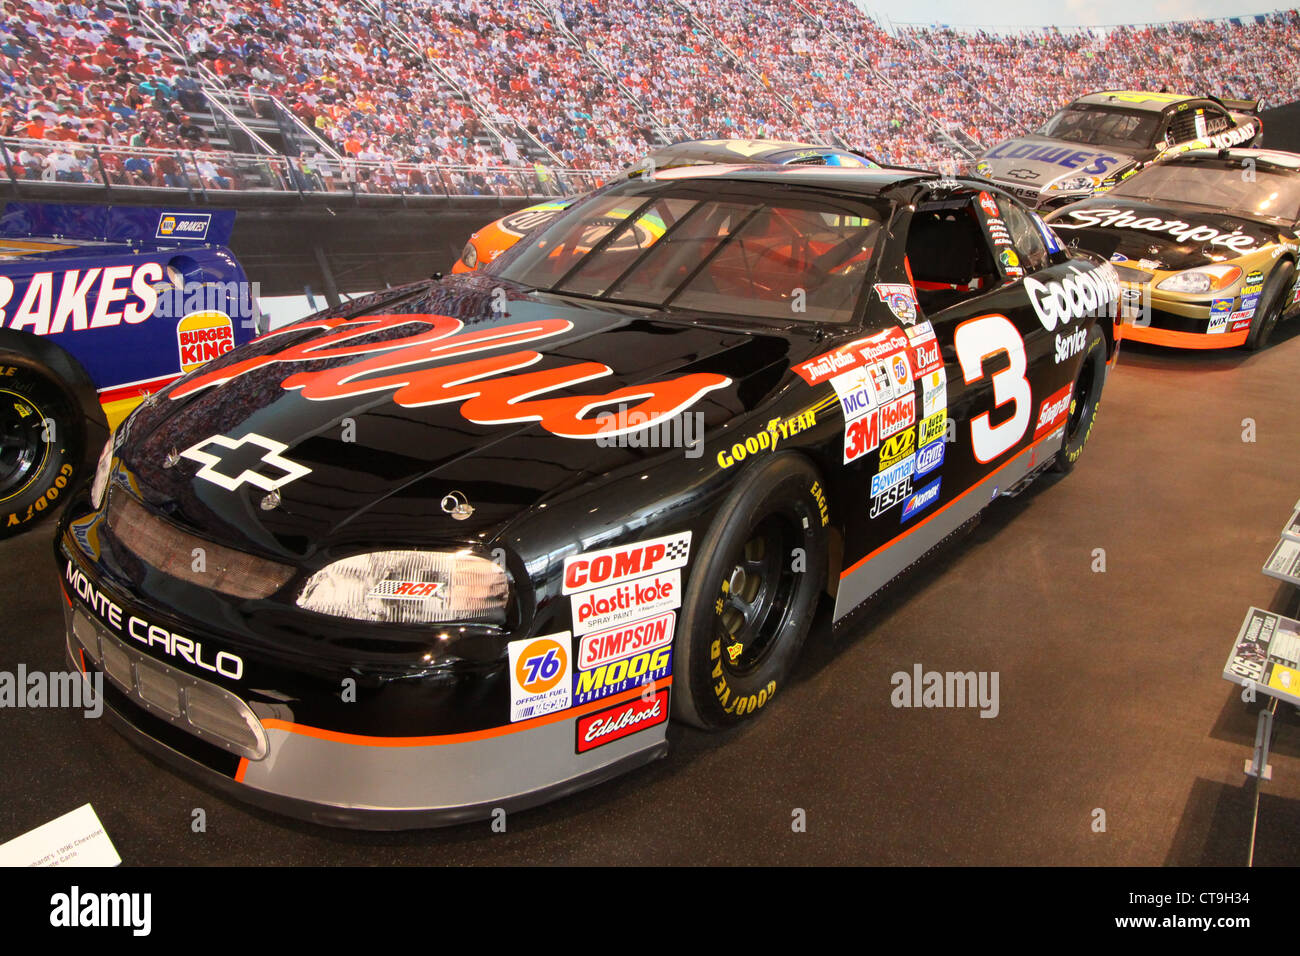 Lawrence Hall Chevrolet >> Goodwrench Stock Photos & Goodwrench Stock Images - Alamy